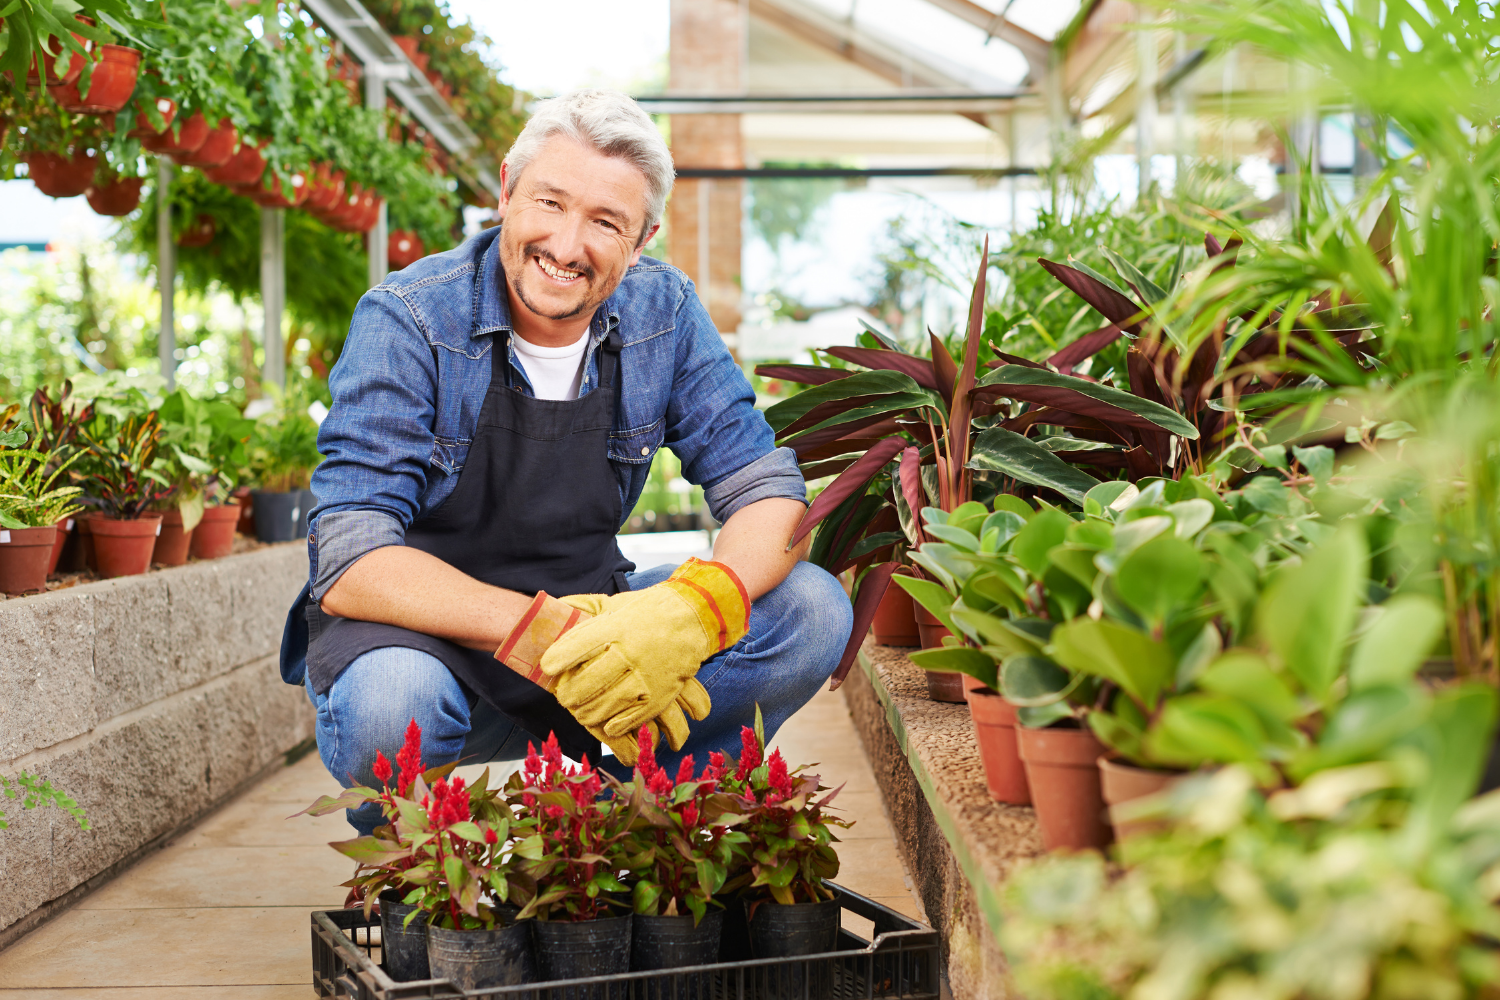 Top 10 Online Payment & Billing Solutions for Landscaping & Gardening Businesses